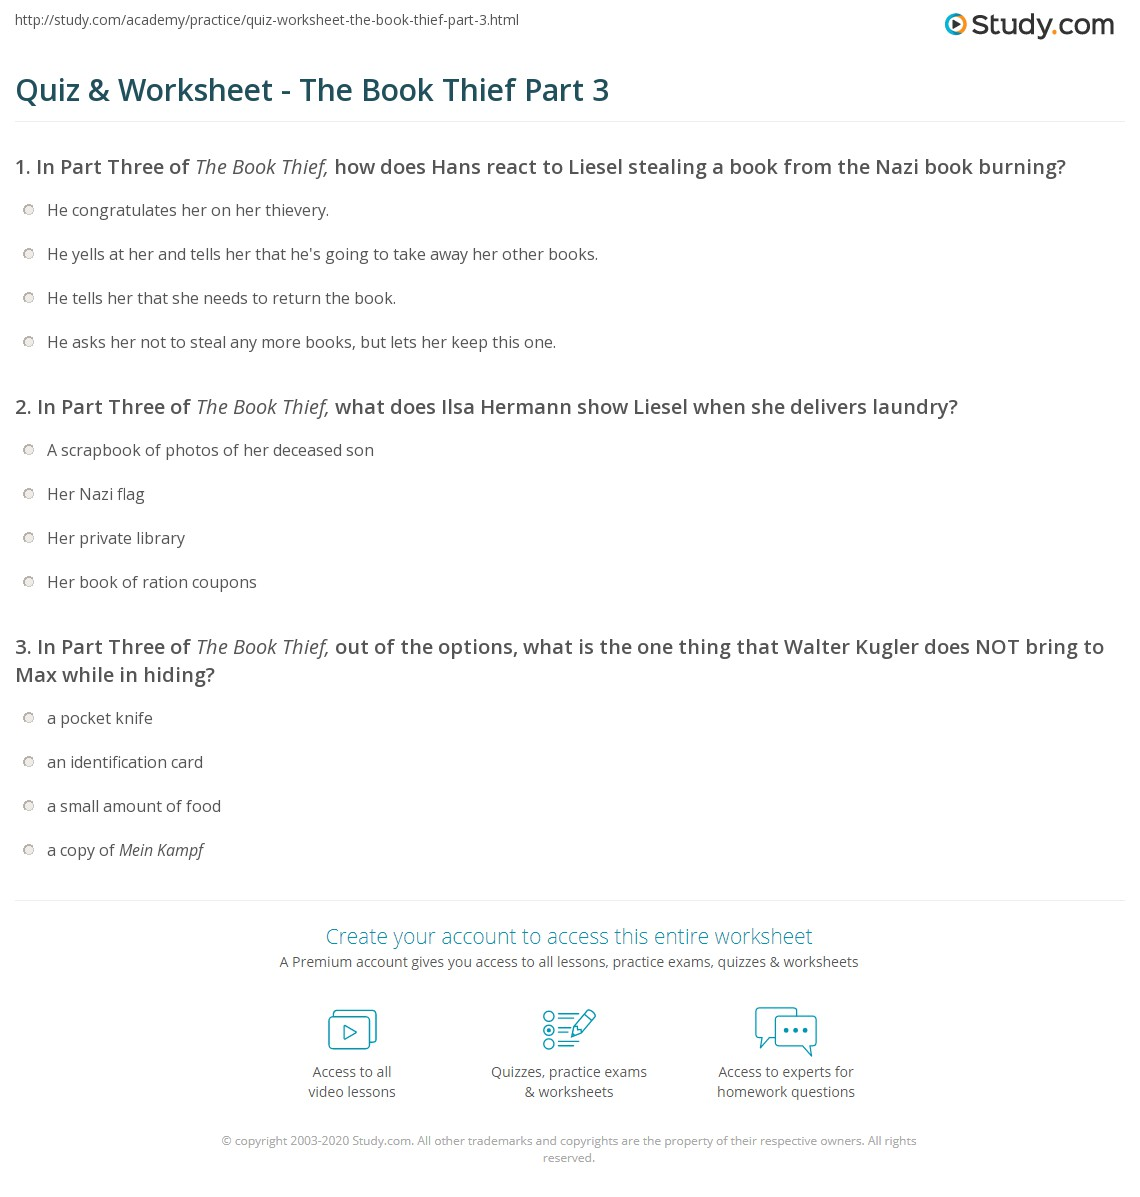 quiz worksheet the book thief part com in part three of the book thief what does ilsa hermann show liesel when she delivers laundry